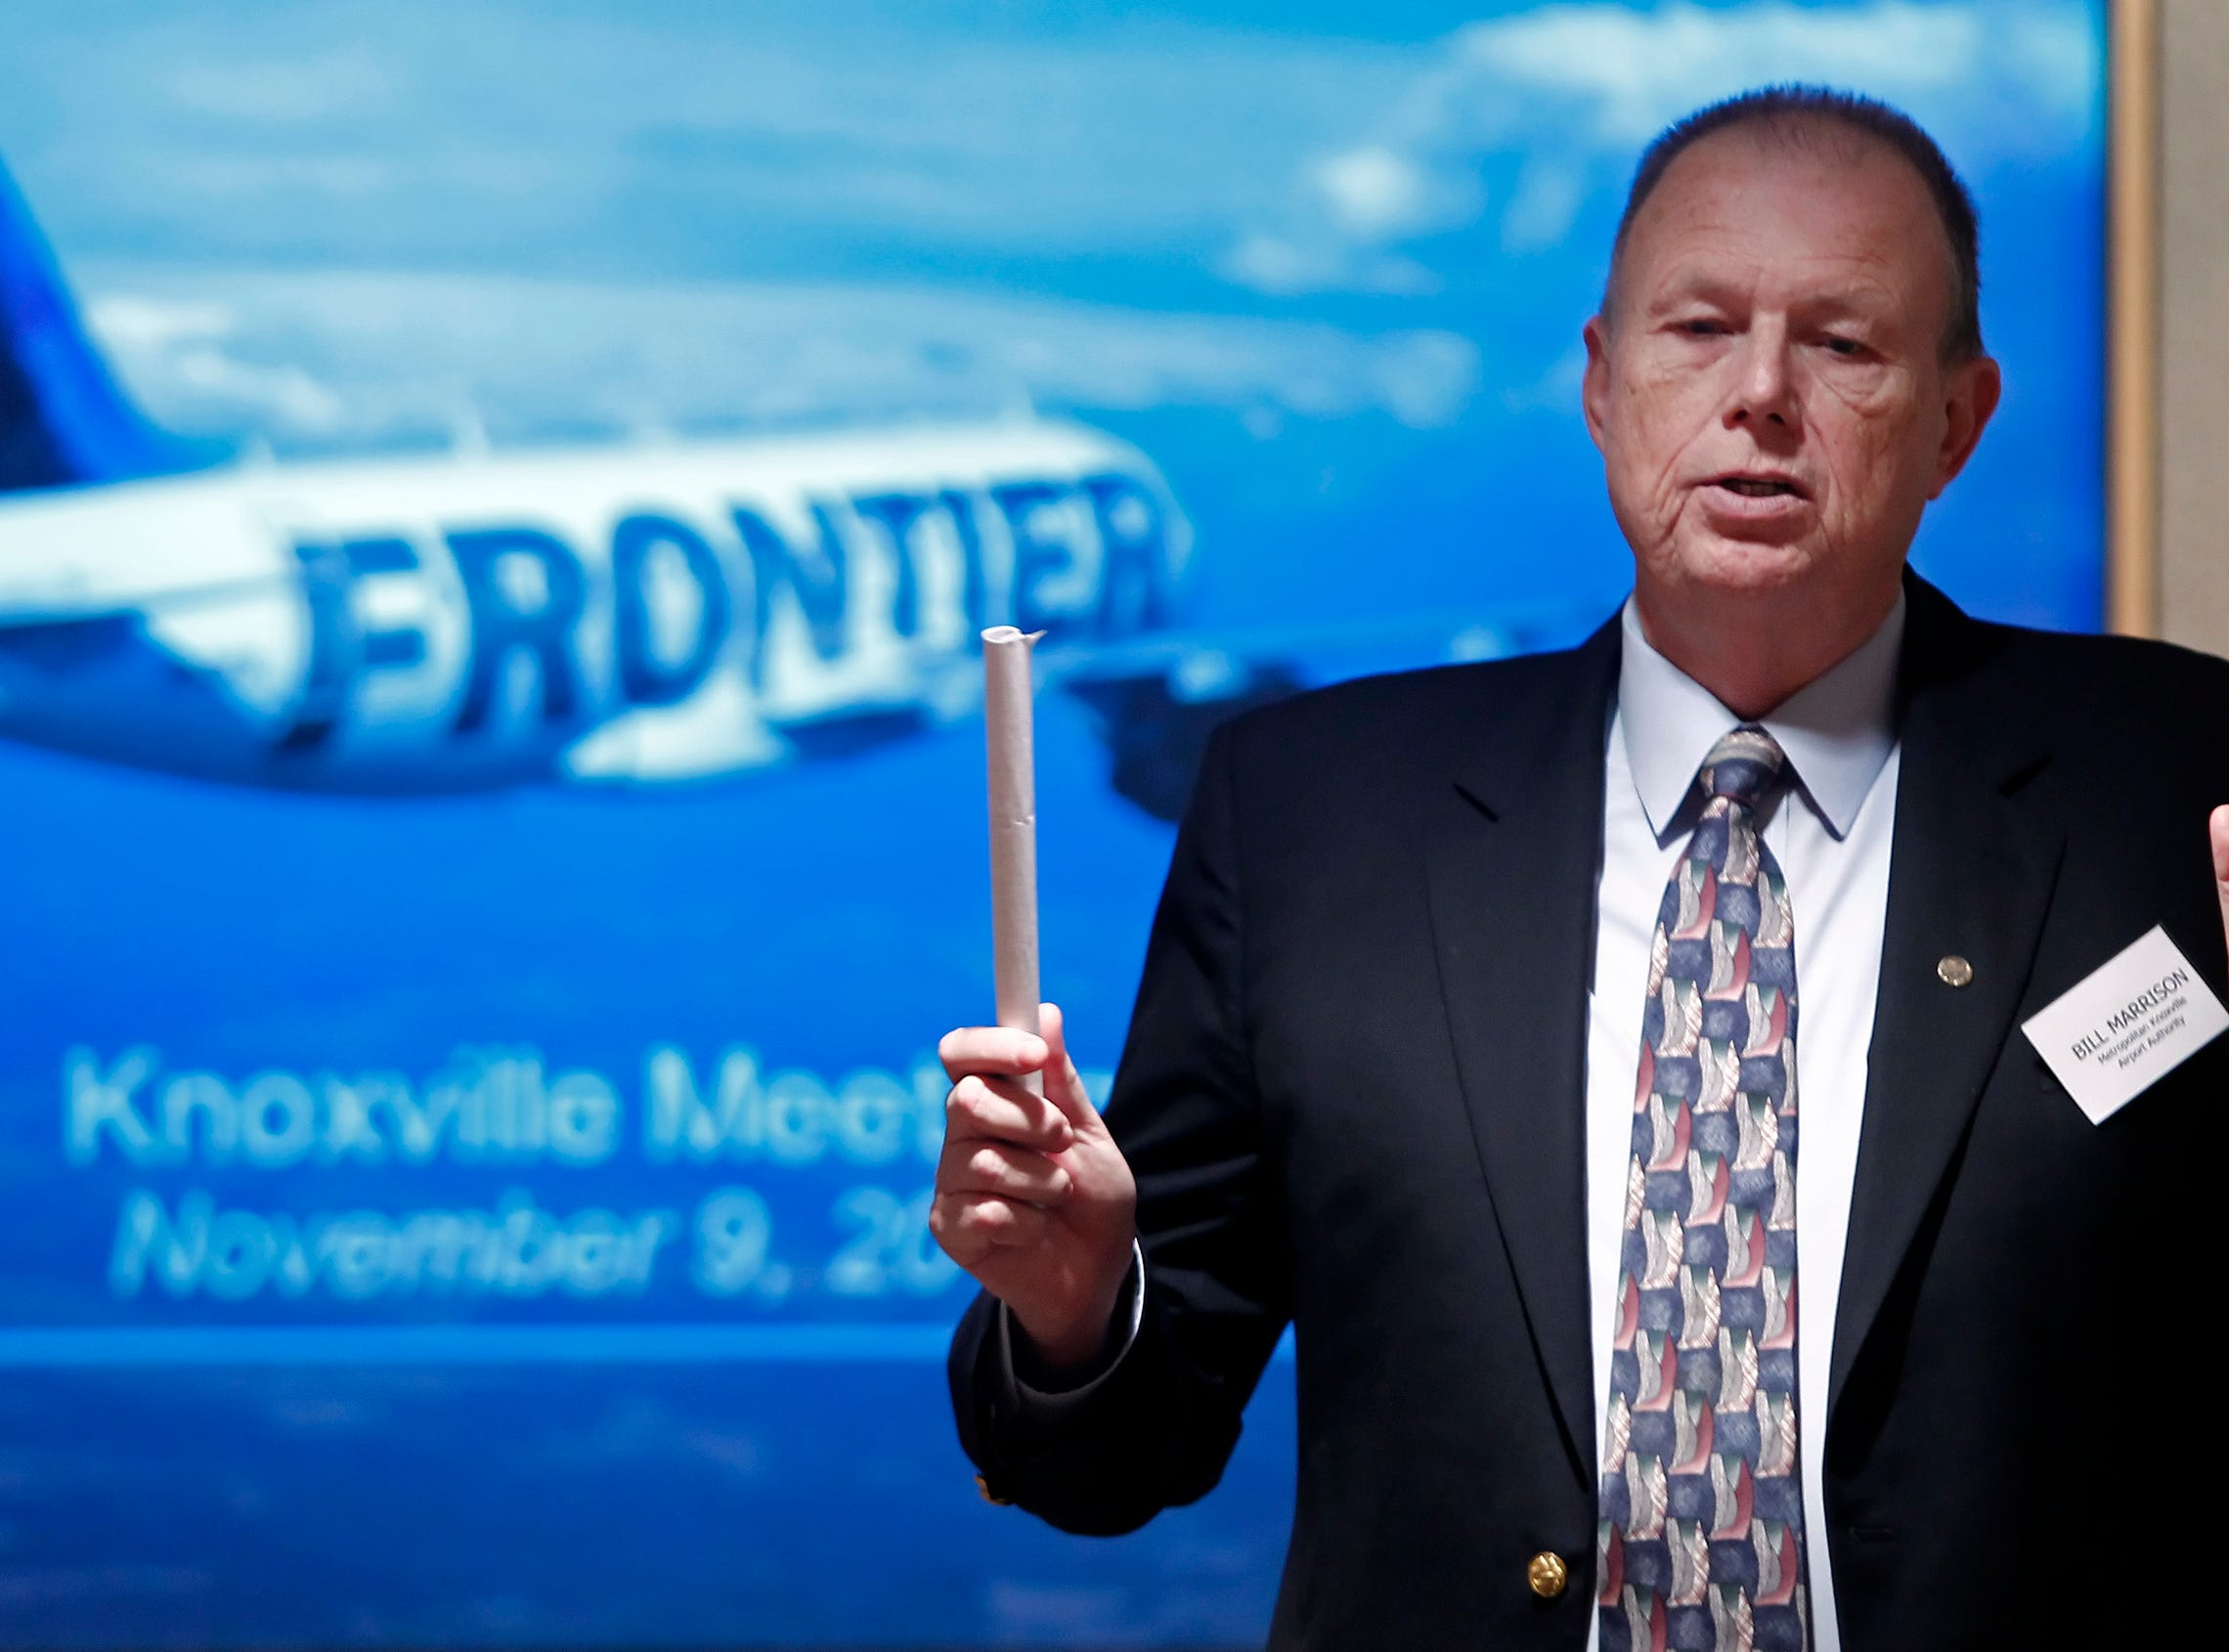 Bill Marrison, president of the Metropolitan Knoxville Airport Authority speaks during a meeting at Scripps Networks Friday, Nov. 9, 2011.